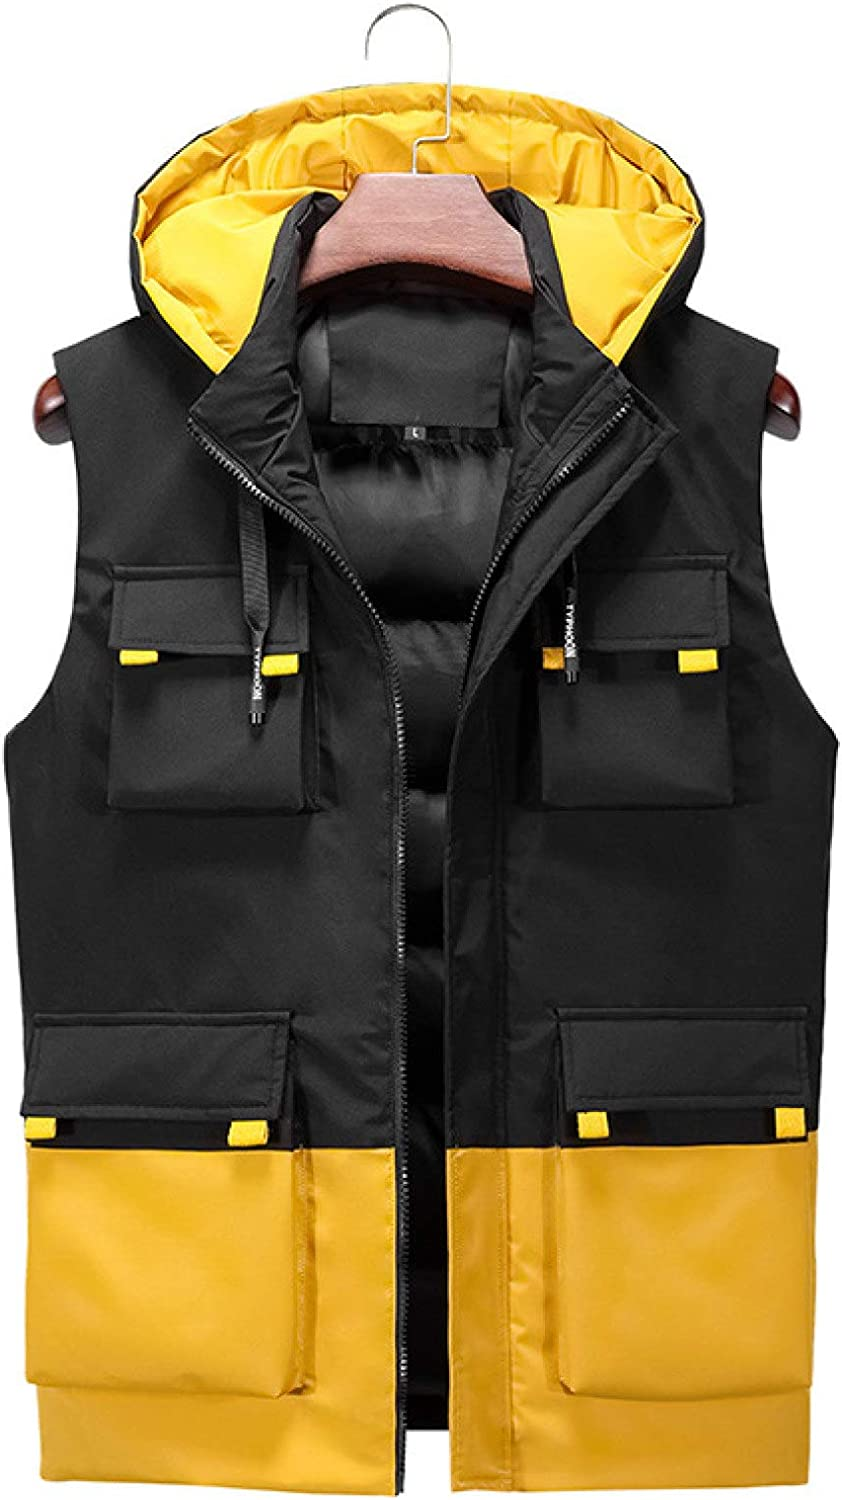 Men's Winter Outdoor Hooded Vests Warm Thicken Polyester Lightweight Sleeveless Quilted Puffer for Casual Sports